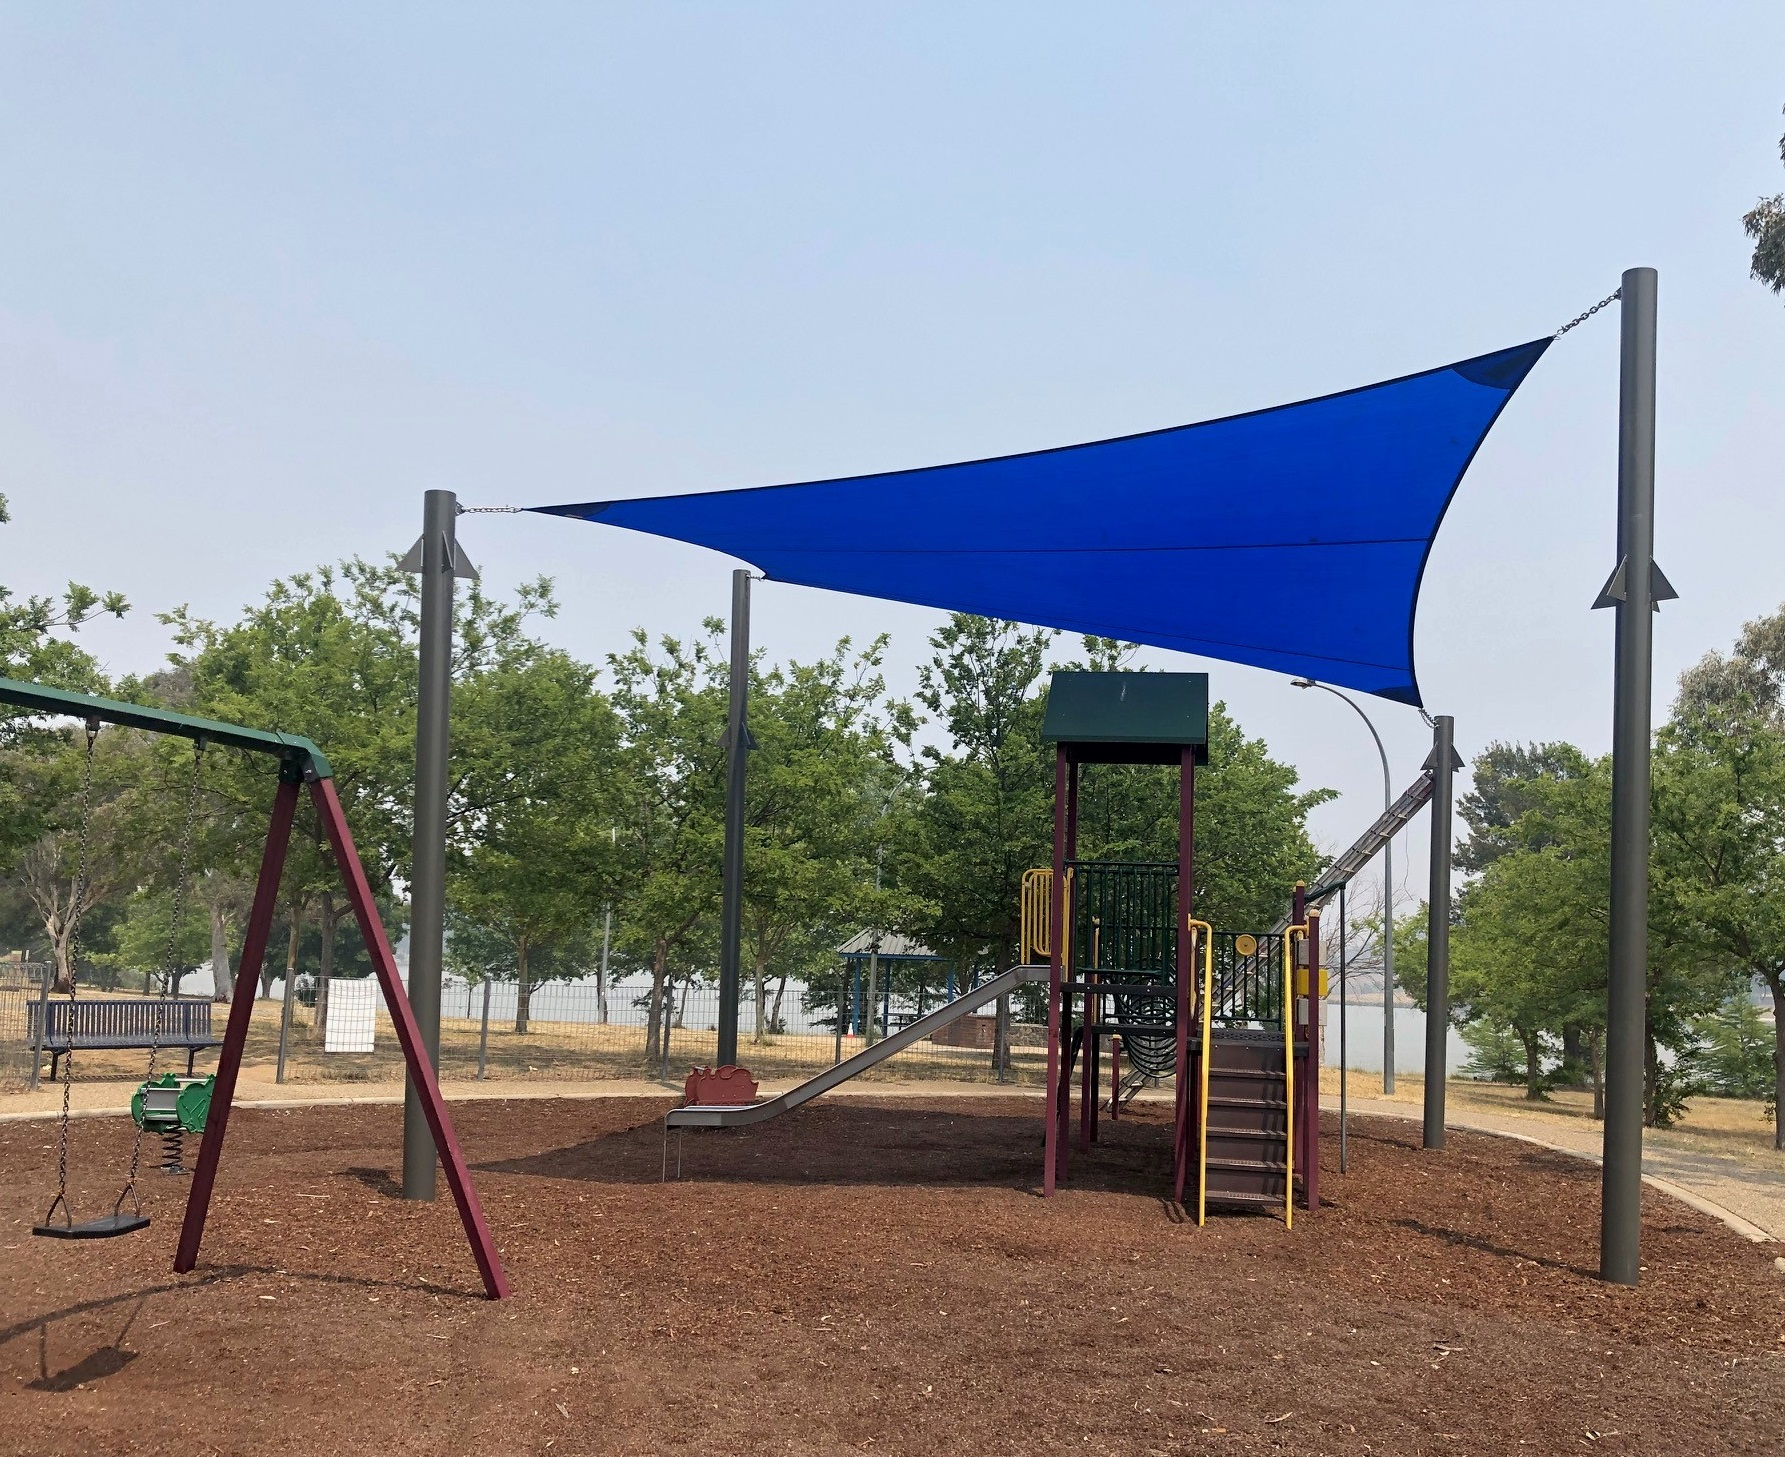 Image of shade sail installed at the playground on Mortimer Lewis Drive in Greenway